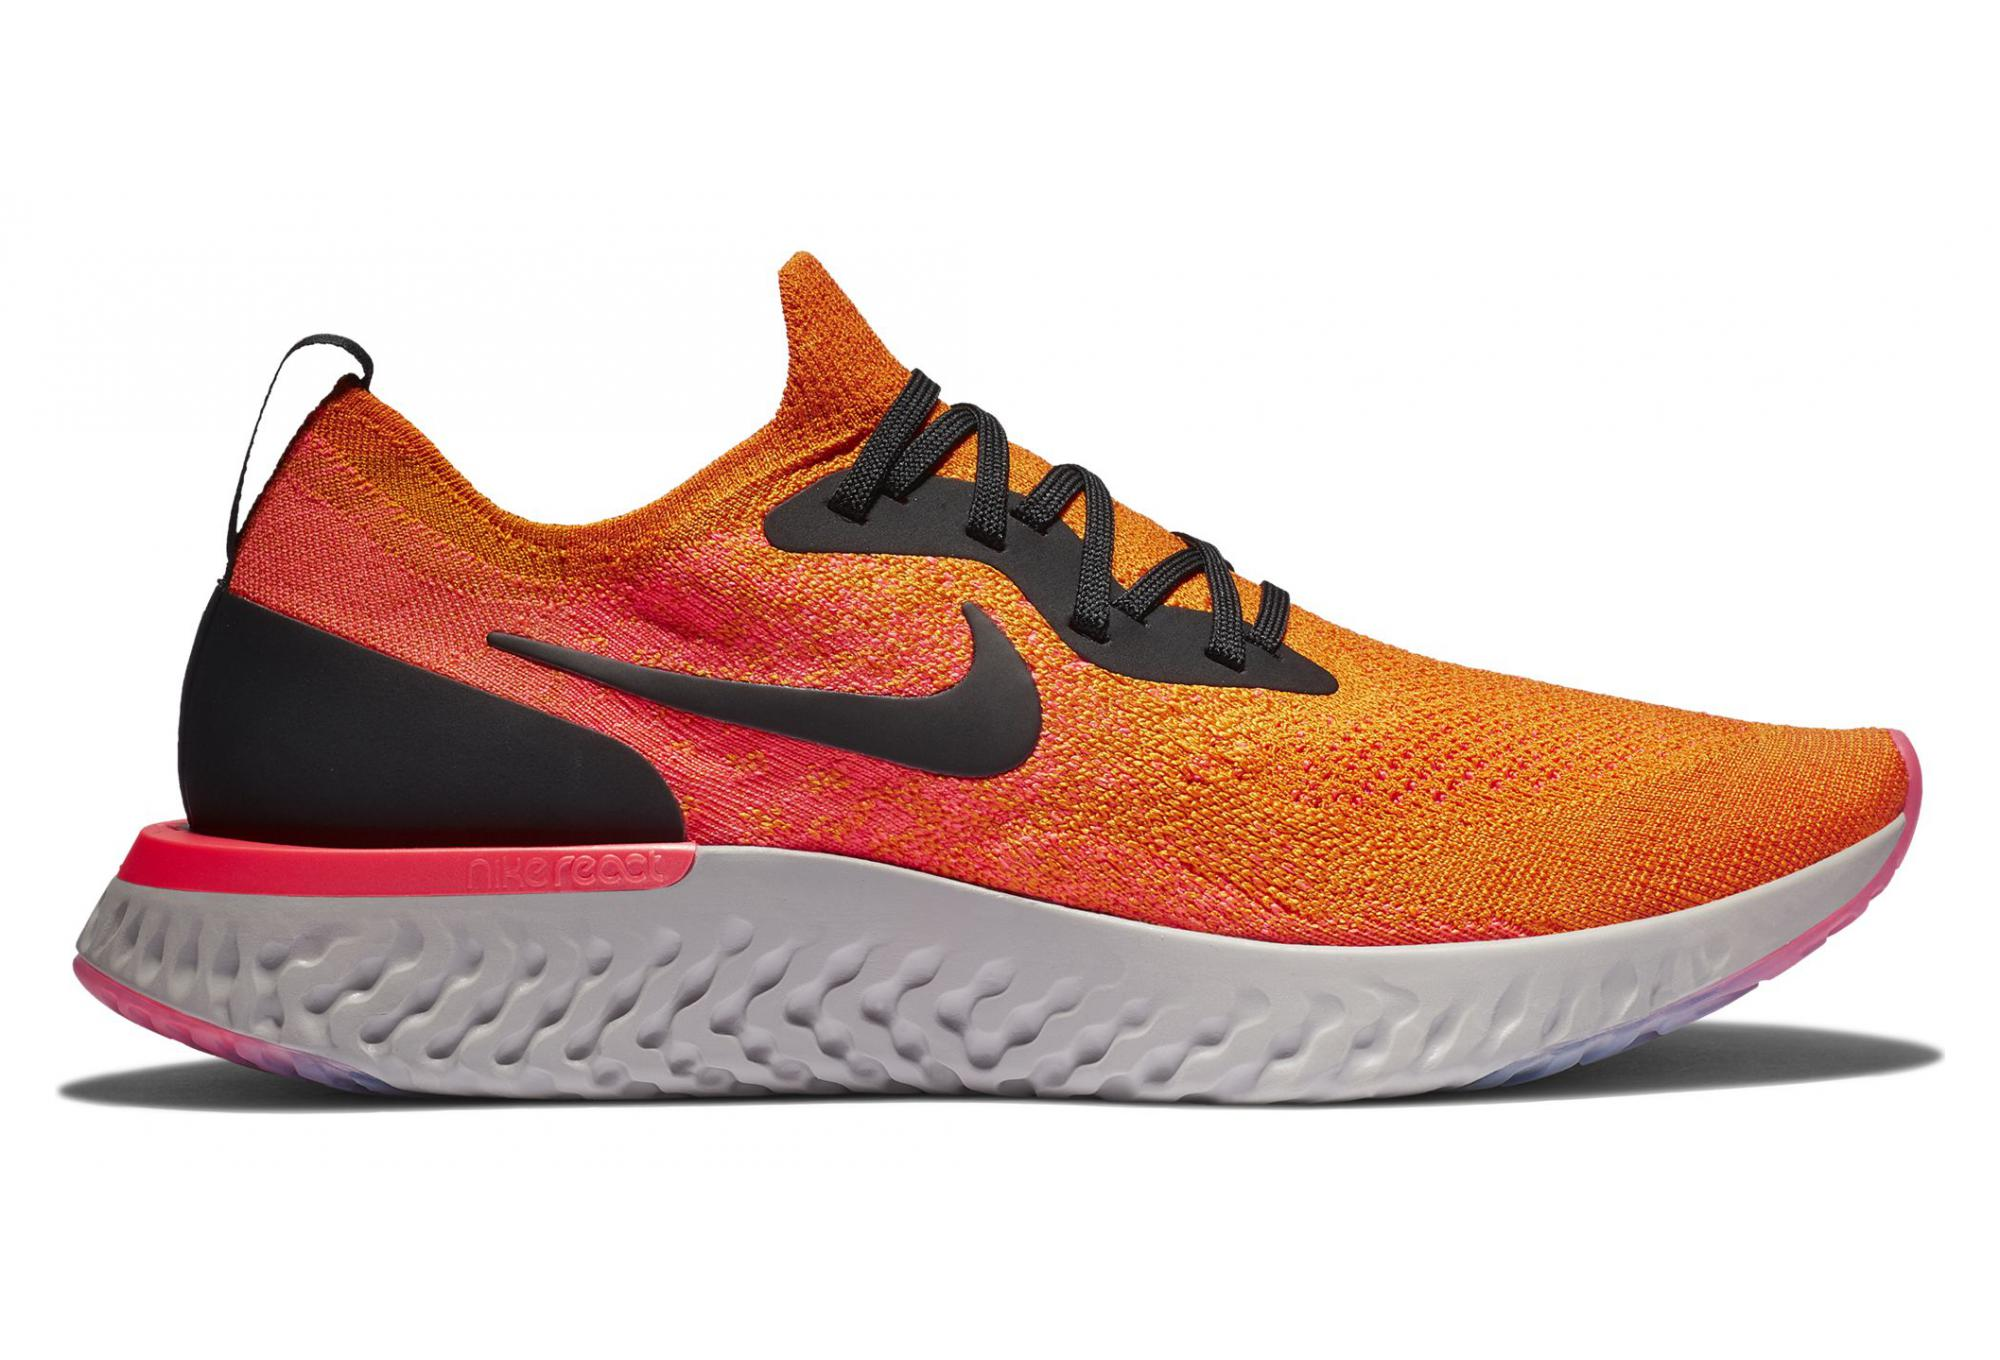 8d885b45e3d4a Nike Epic React Flyknit Orange Men